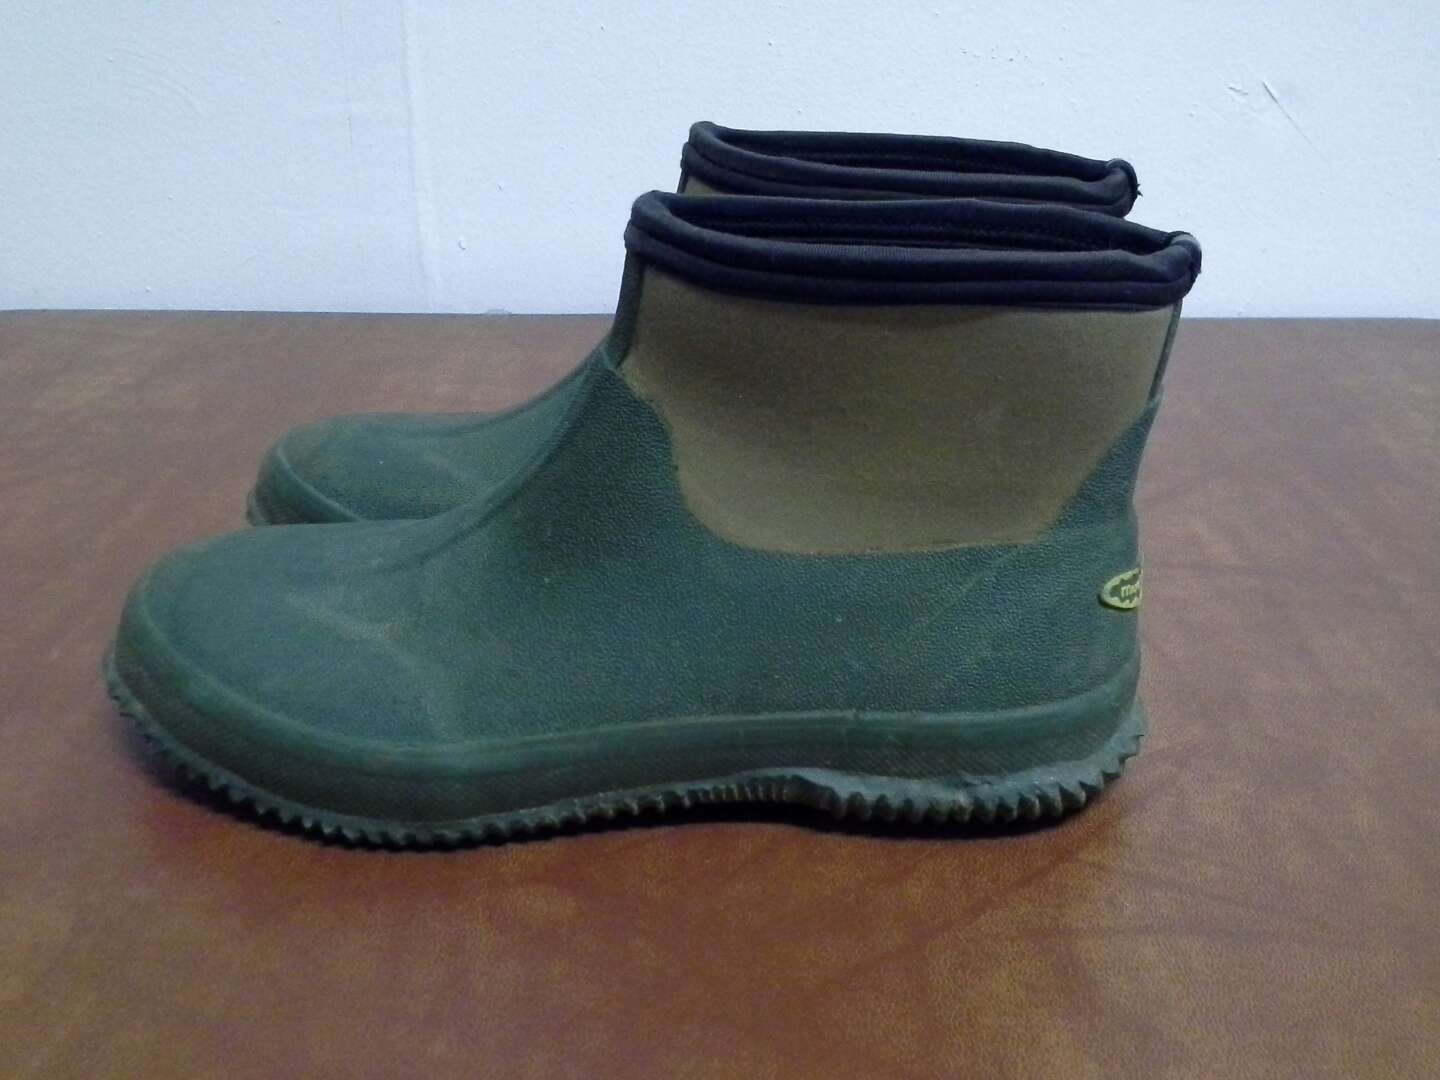 mud buddies gardening boots size 7 for sale in